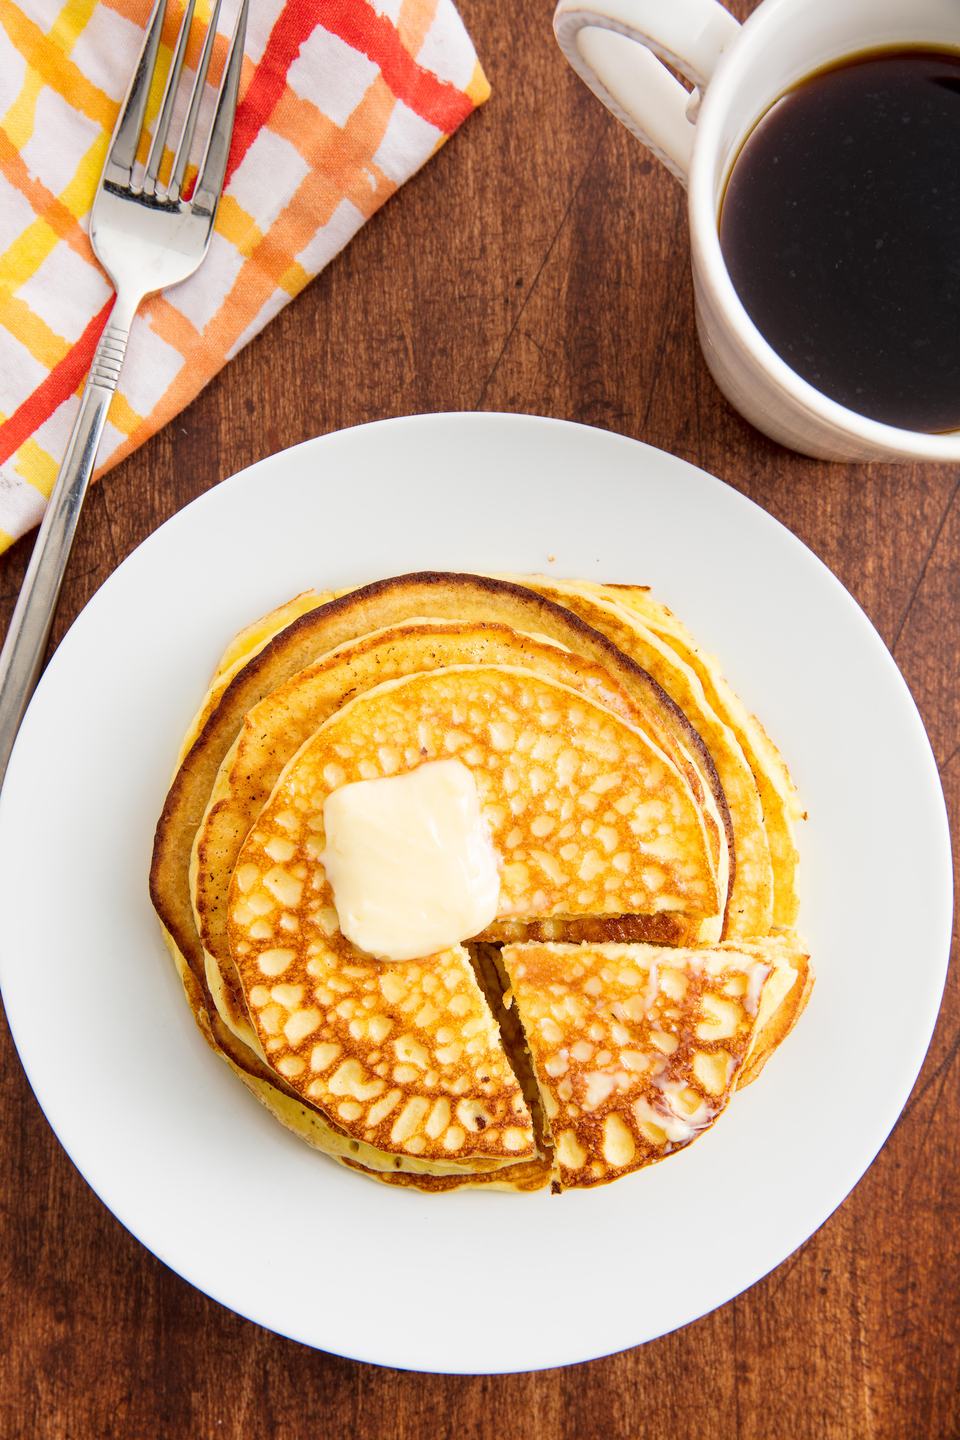 "<p>We are here for these Keto Pancakes.</p><p>Get the recipe from <a href=""https://www.delish.com/cooking/recipe-ideas/recipes/a58712/keto-pancakes-recipe/"" rel=""nofollow noopener"" target=""_blank"" data-ylk=""slk:Delish"" class=""link rapid-noclick-resp"">Delish</a>. </p>"